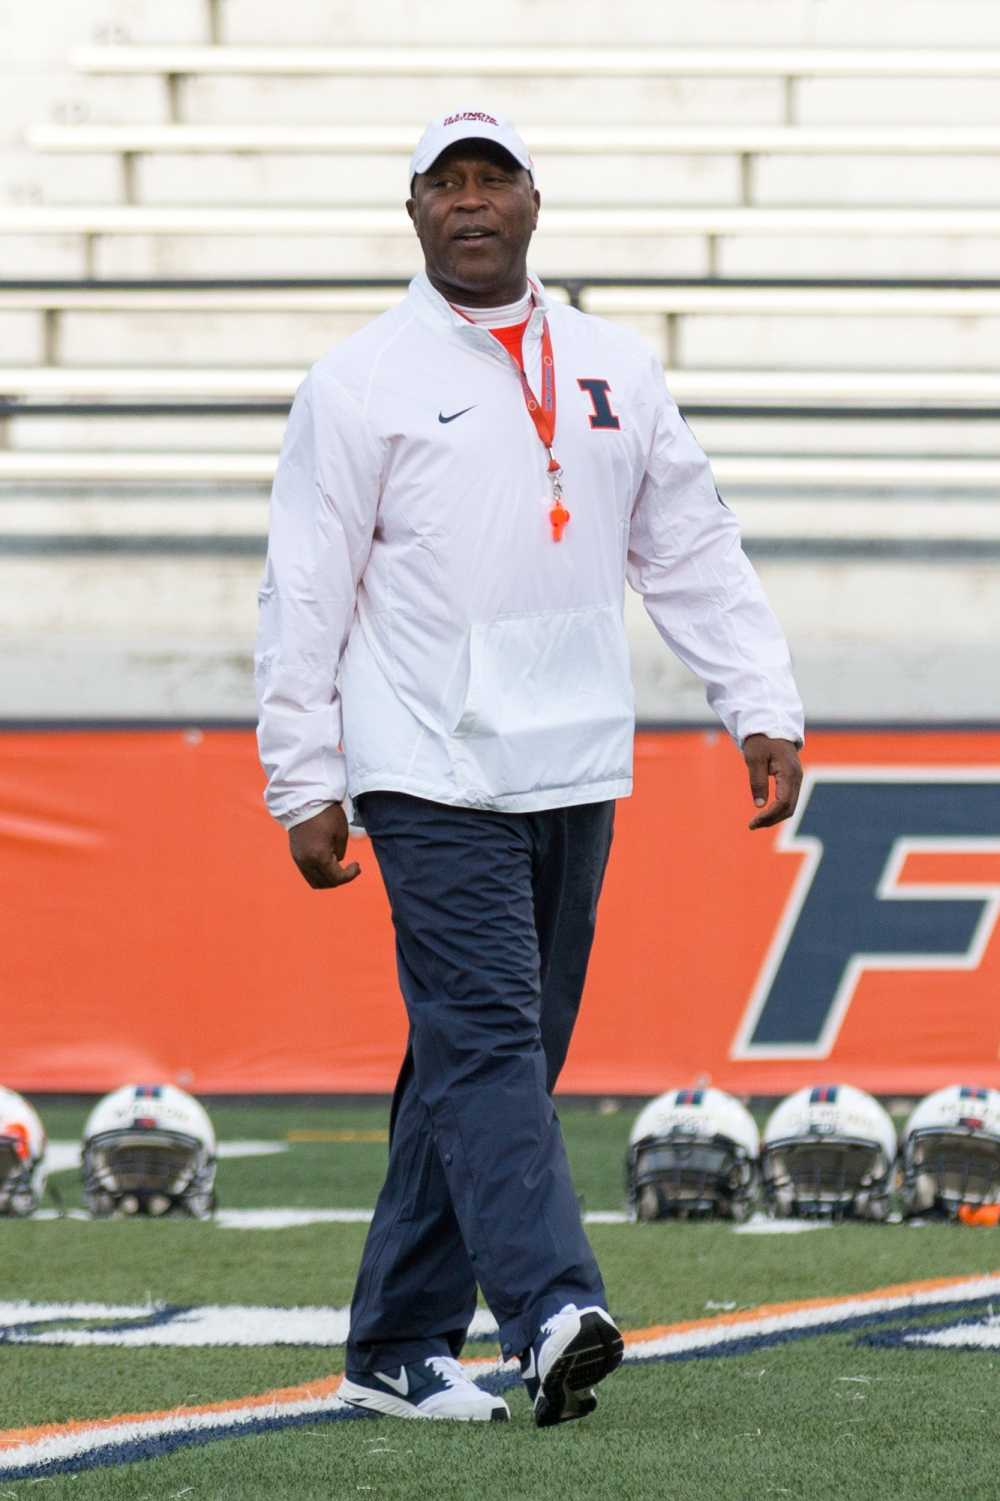 Lovie Smith supervises the first spring practice of the season on April 1st, 2016.